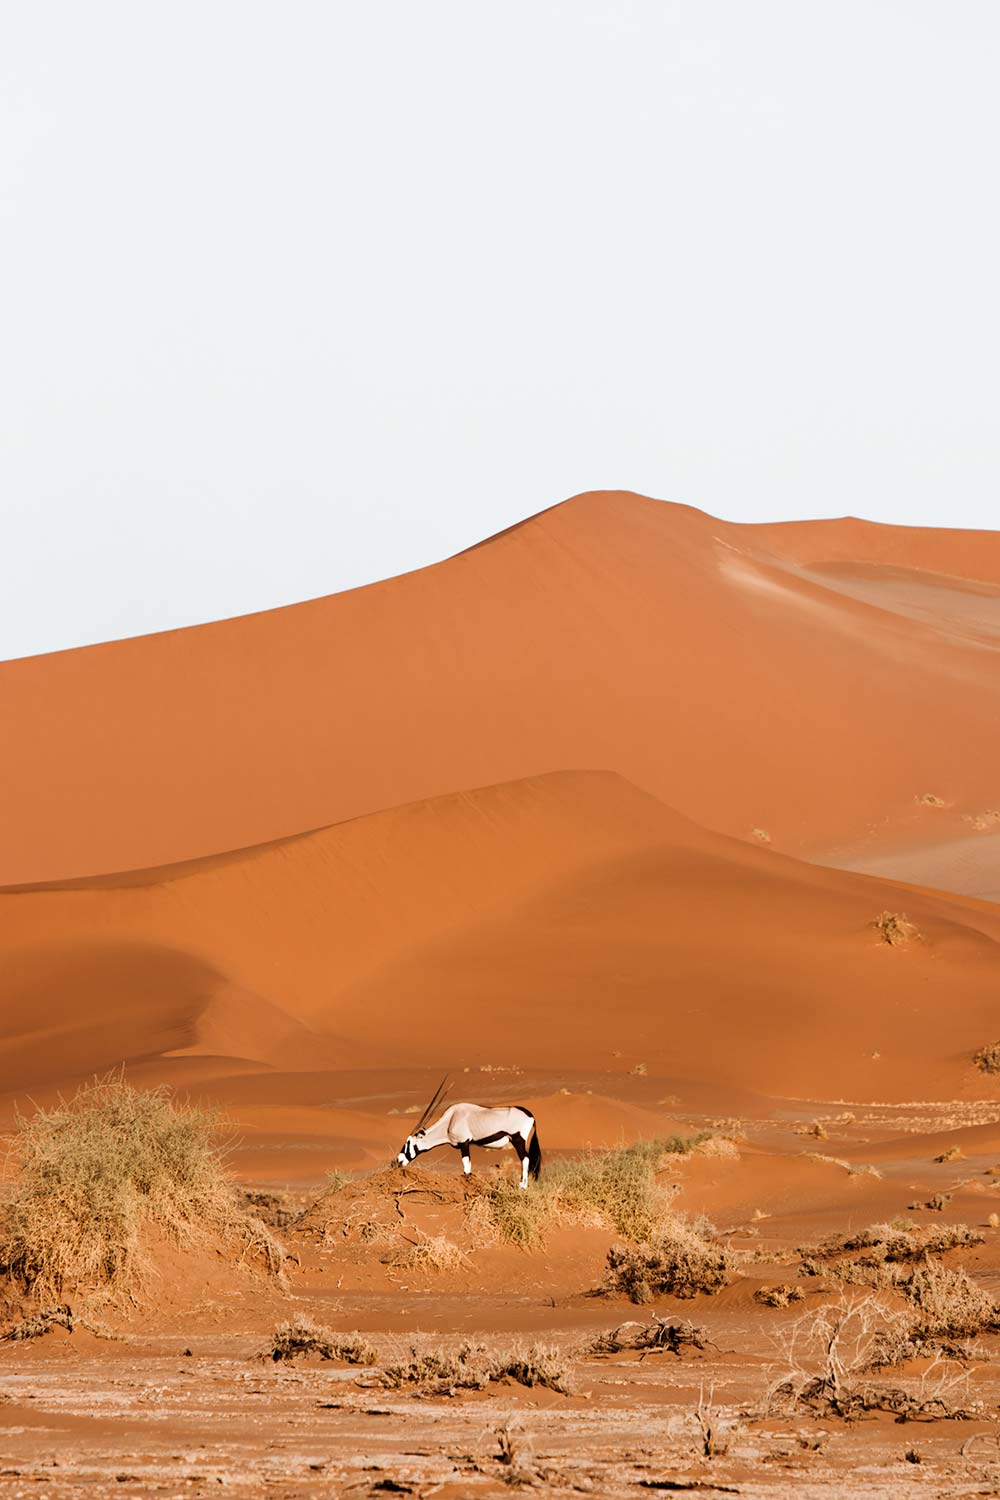 Oryxes even roam the seemingly inhabitable lands of Sossusvlei